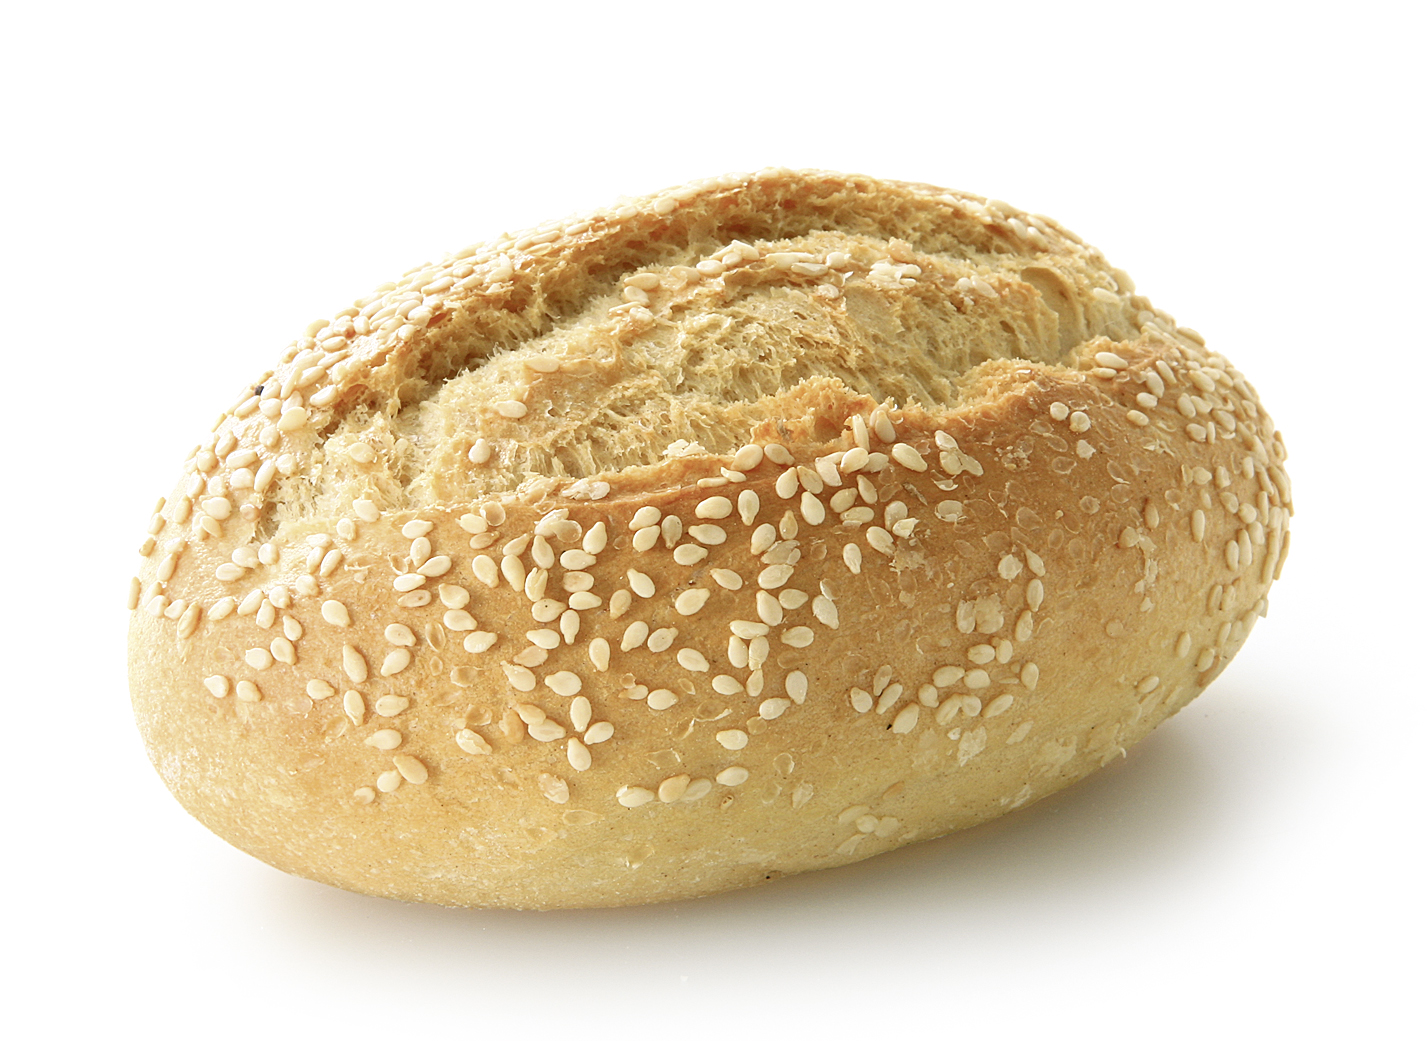 Sesame Seed Roll - Small wheat bakery oval/ sprinkled with sesame seeds